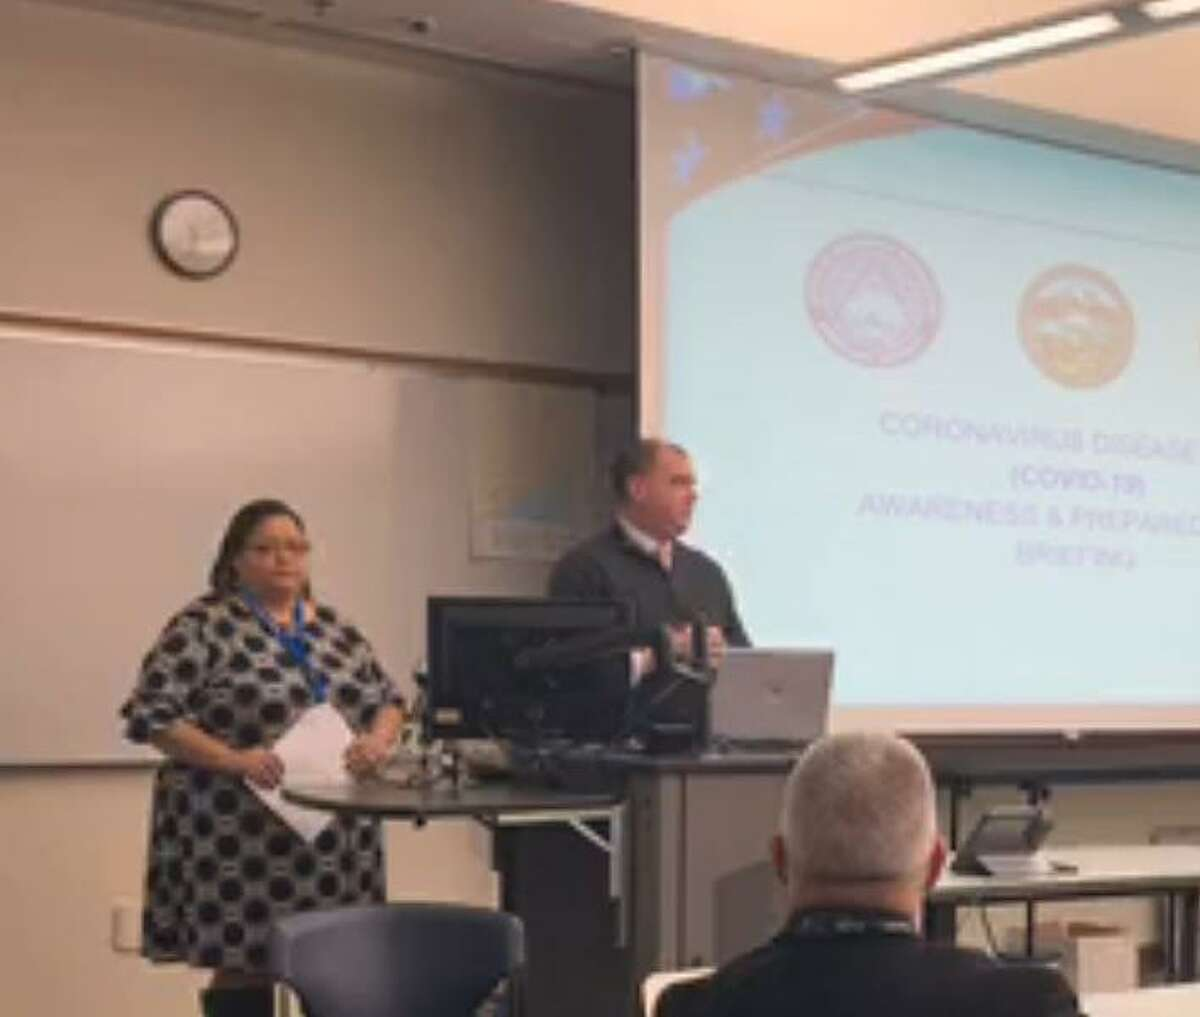 Scott Appleby, Bridgeport director of emergency management and communications, led a briefing on the city's response to novel Coronavirus on Friday, March 6, 2020.